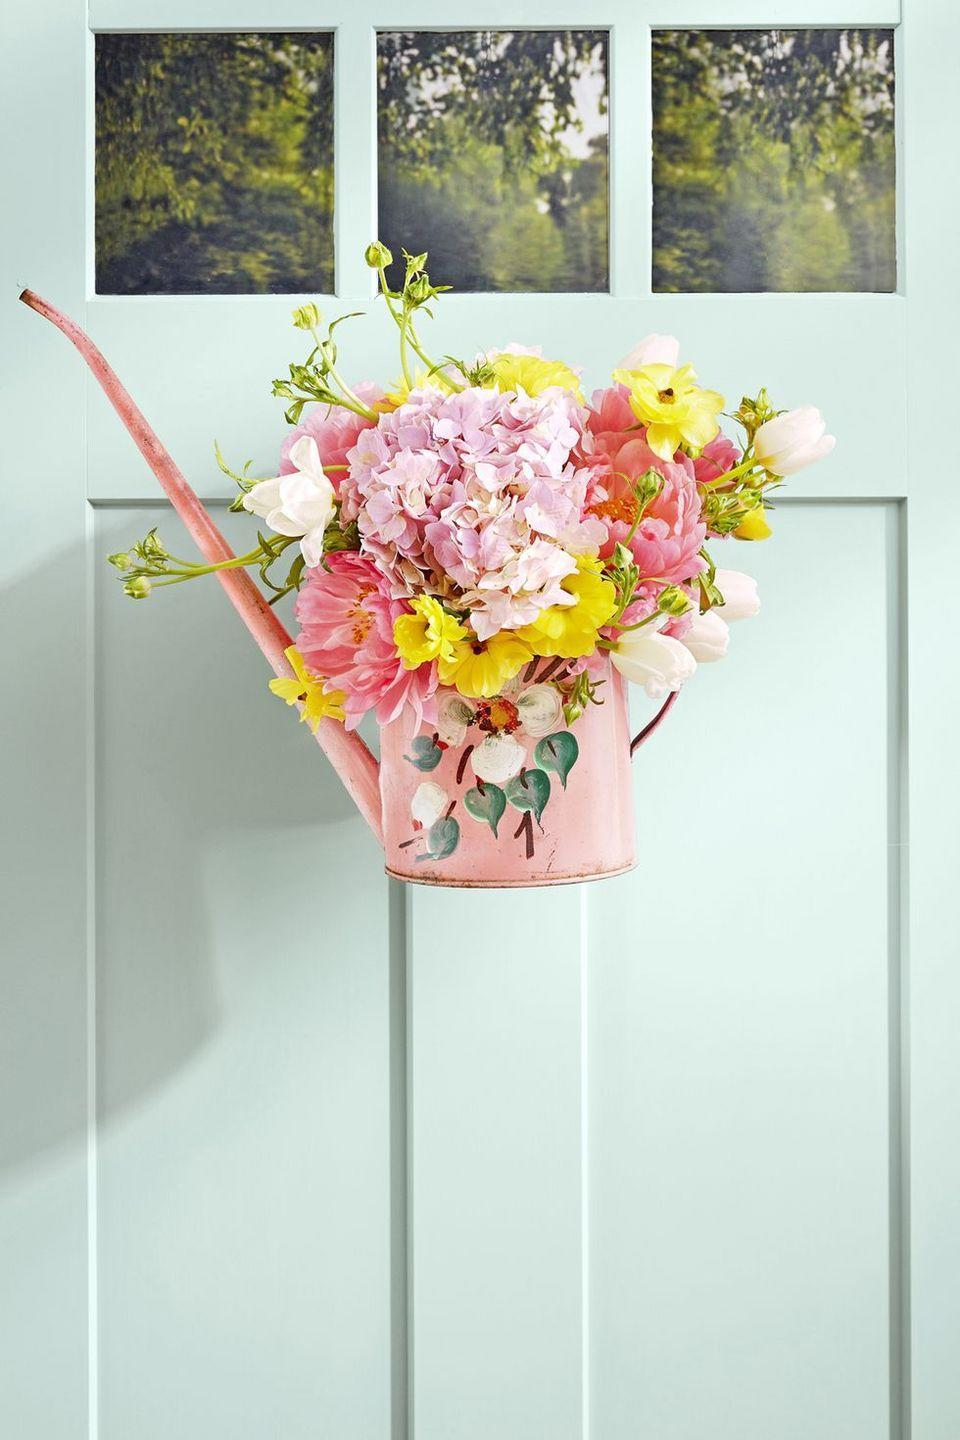 """<p>Loop wire around the handle of your favorite watering can, hang it from your door, then fill with fresh blooms. It's as easy as that!</p><p><a class=""""link rapid-noclick-resp"""" href=""""https://www.amazon.com/Calunce-Tradition-Watering-LitreWatering-Flowers/dp/B07DC4XWCK?tag=syn-yahoo-20&ascsubtag=%5Bartid%7C10050.g.4088%5Bsrc%7Cyahoo-us"""" rel=""""nofollow noopener"""" target=""""_blank"""" data-ylk=""""slk:SHOP PINK WATERING CANS"""">SHOP PINK WATERING CANS</a></p>"""